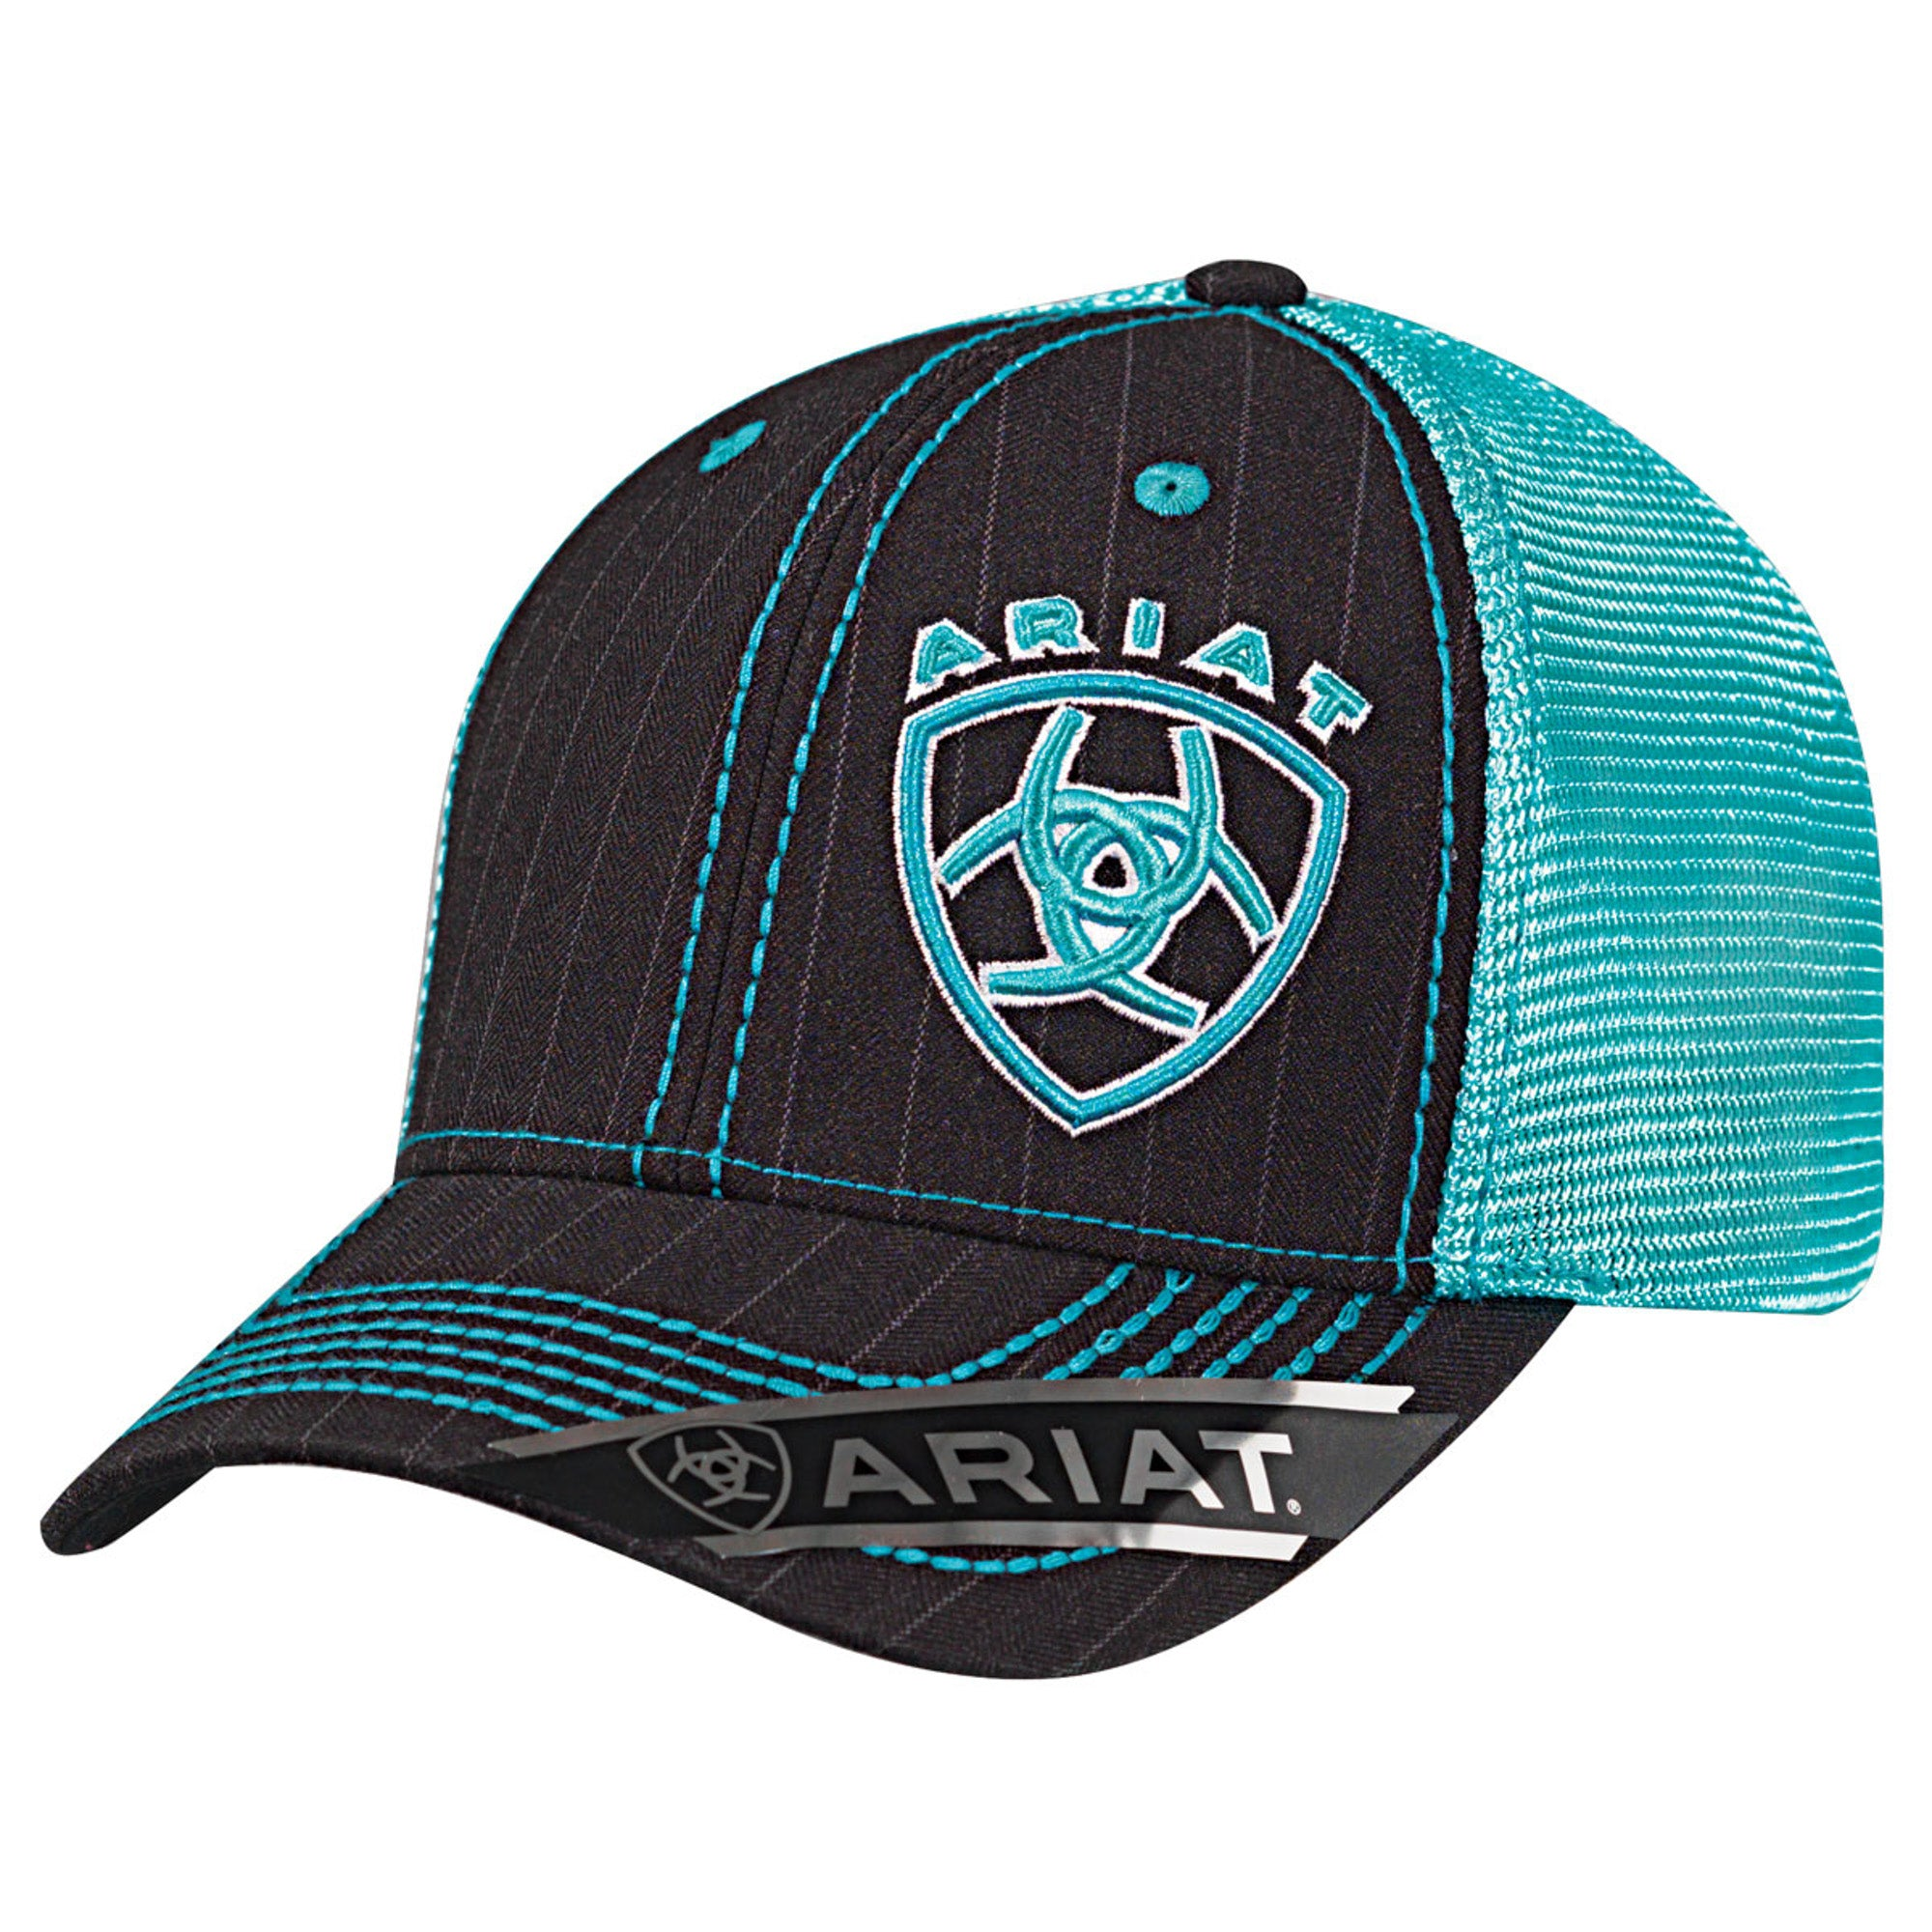 0344ce12d5a81 Ariat Black Turquoise Mens Mesh Snap Pinstripe Baseball Cap – The ...